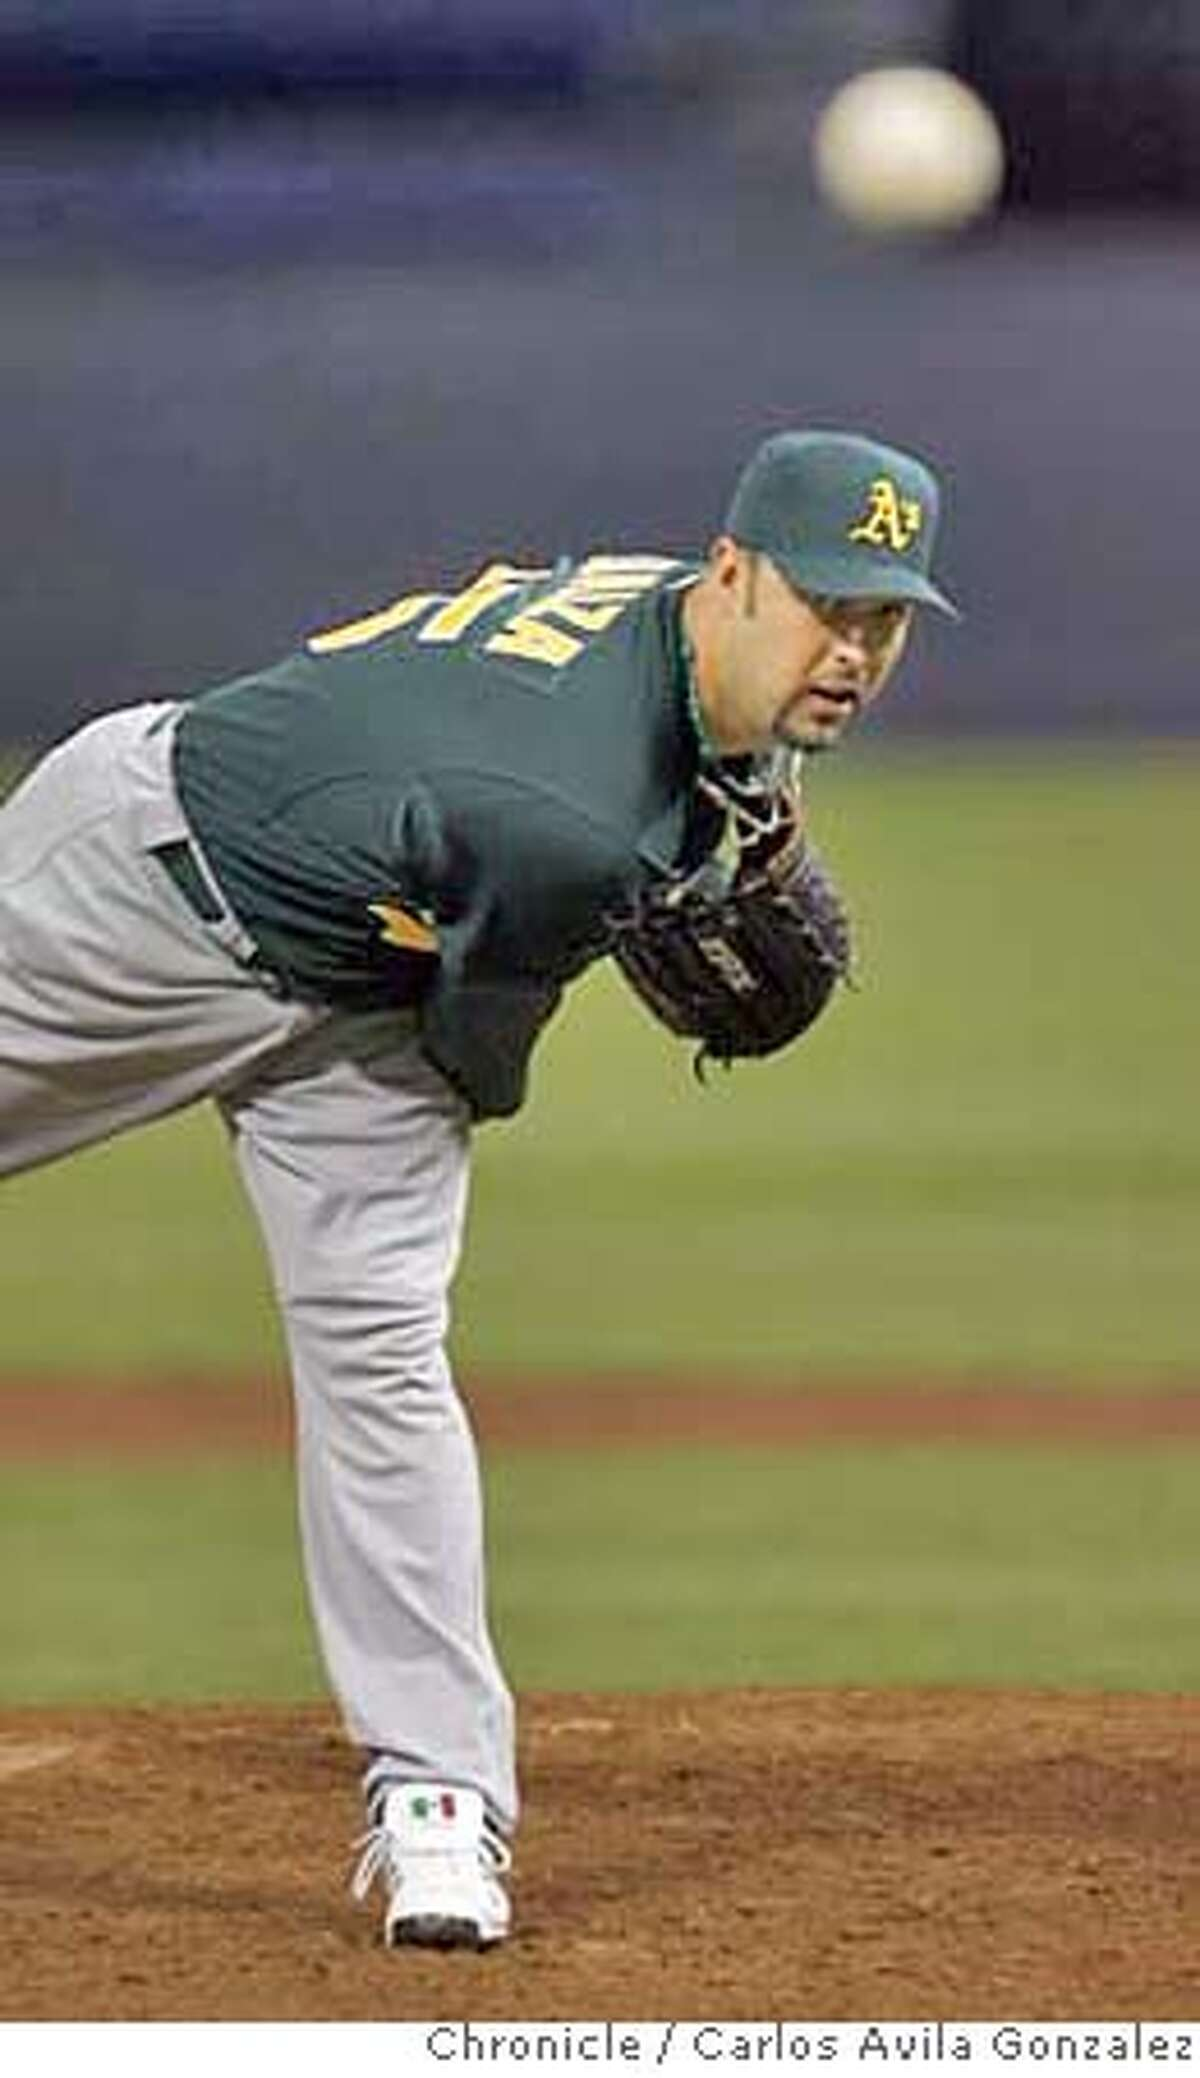 Esteban Loaiza started the game for the Athletics, and got a no decision after giving up back to back homeruns in the bottom of the sixth inning. The Athletics defeated the Twins 5-2. The Oakland Athletics played the Minnesota Twins in Game 2 of the American League Division Series at the Metrodome in Minneapolis, Mn., on Wednesday October 4, 2006, winning the game, 5-2. Photo by Carlos Avila Gonzalez/The San Francisco Chronicle Photo taken on 10/4/06, in Minneapolis, Mn, USA **All names cq (source)